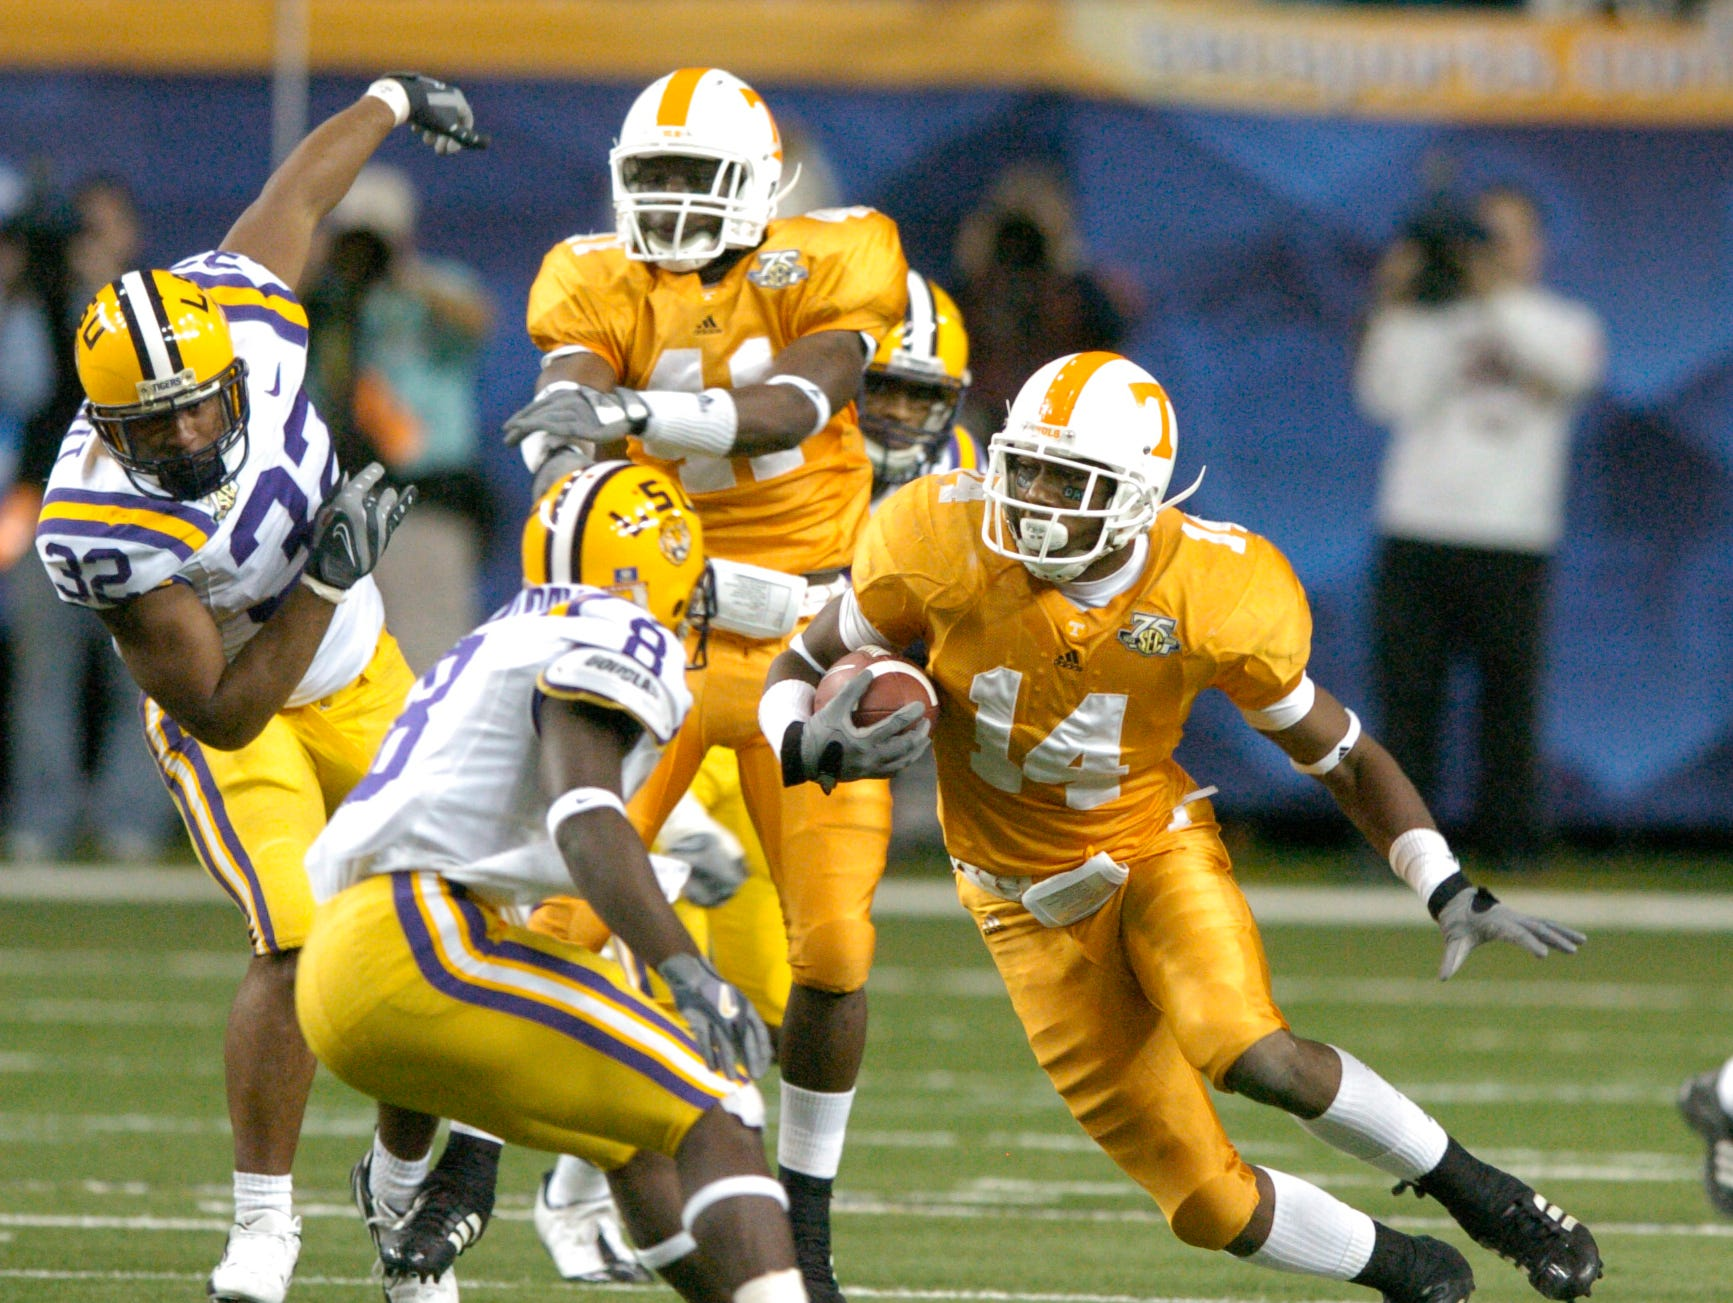 Tennessee safety Eric Berry runs back an LSU fumble during the SEC championship game on Saturday in Atlanta. The Tigers won 21-14, sending the Vols (9-4) to the Outback Bowl in Tampa for the second year in a row.